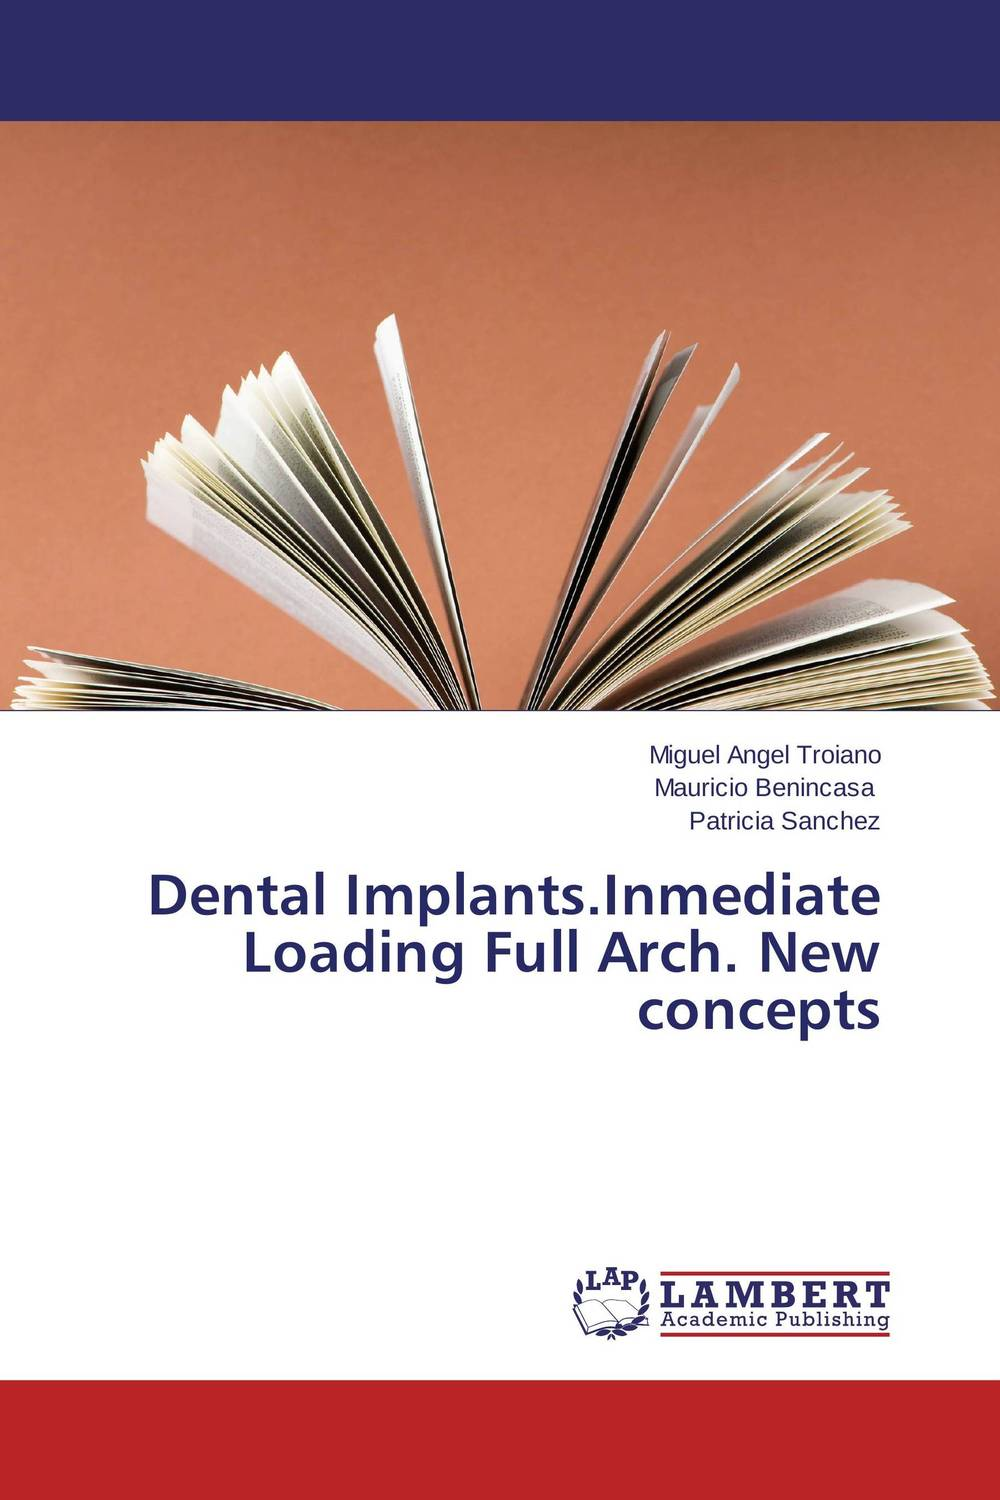 Dental Implants.Inmediate Loading Full Arch. New concepts shaveta kaushal and atamjit singh pal dental implants and its design